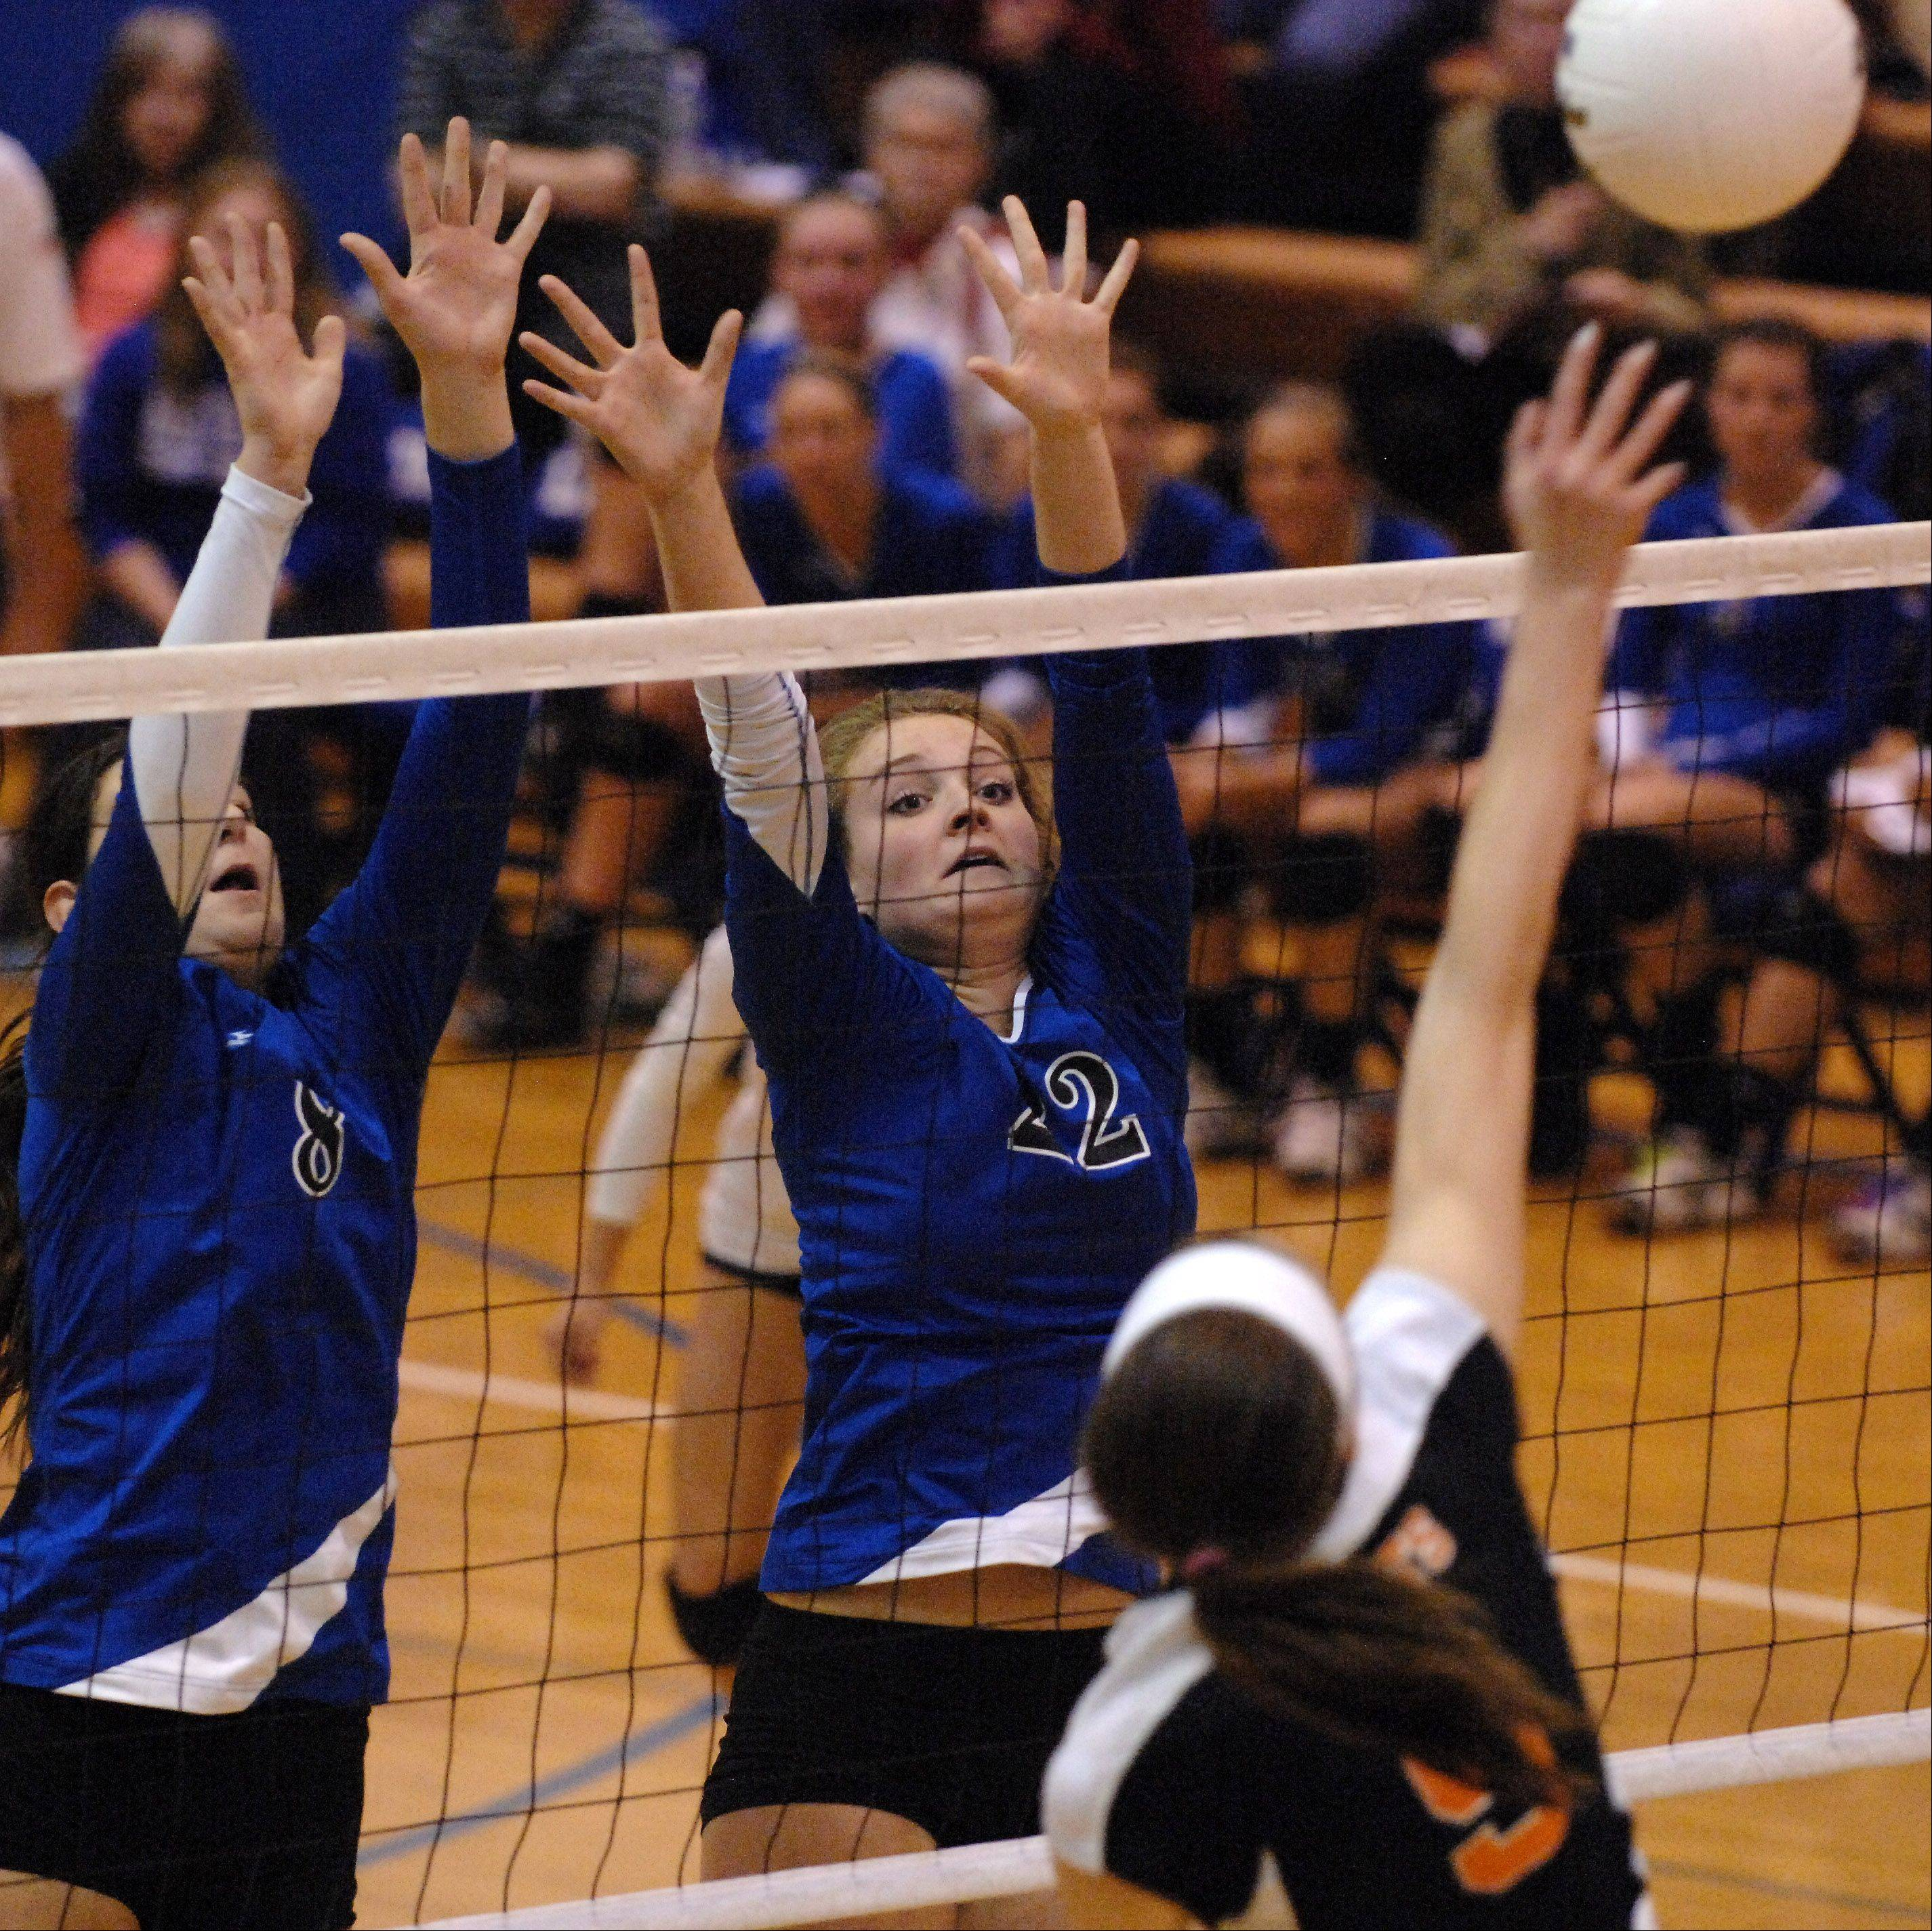 Geneva's Jess Wicinski, left, and Maddie Courter go up for a block against St. Charles East during Tuesday's sectional semifinals at Larkin High School in Elgin.